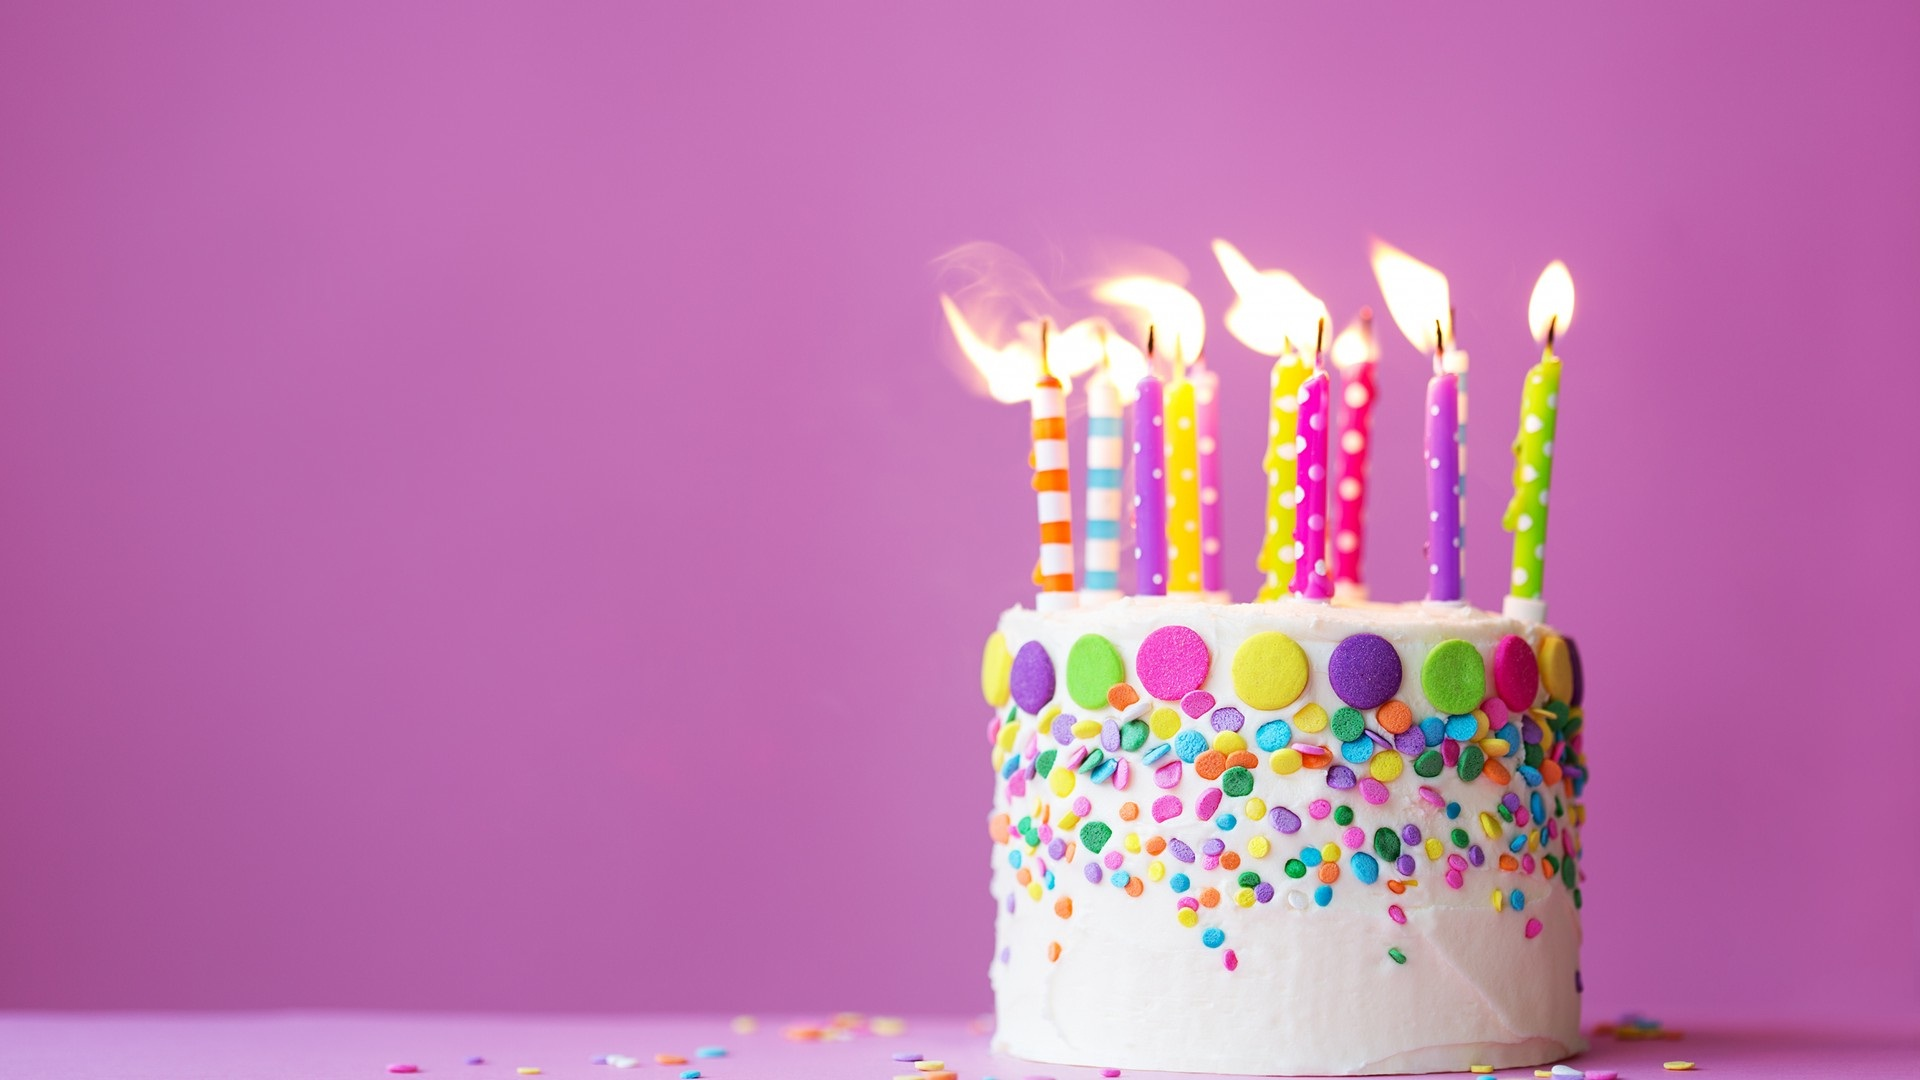 happy birthday images hd 1080p ; Happy-birthday-cake-1080p-wide-latest-wallpapers